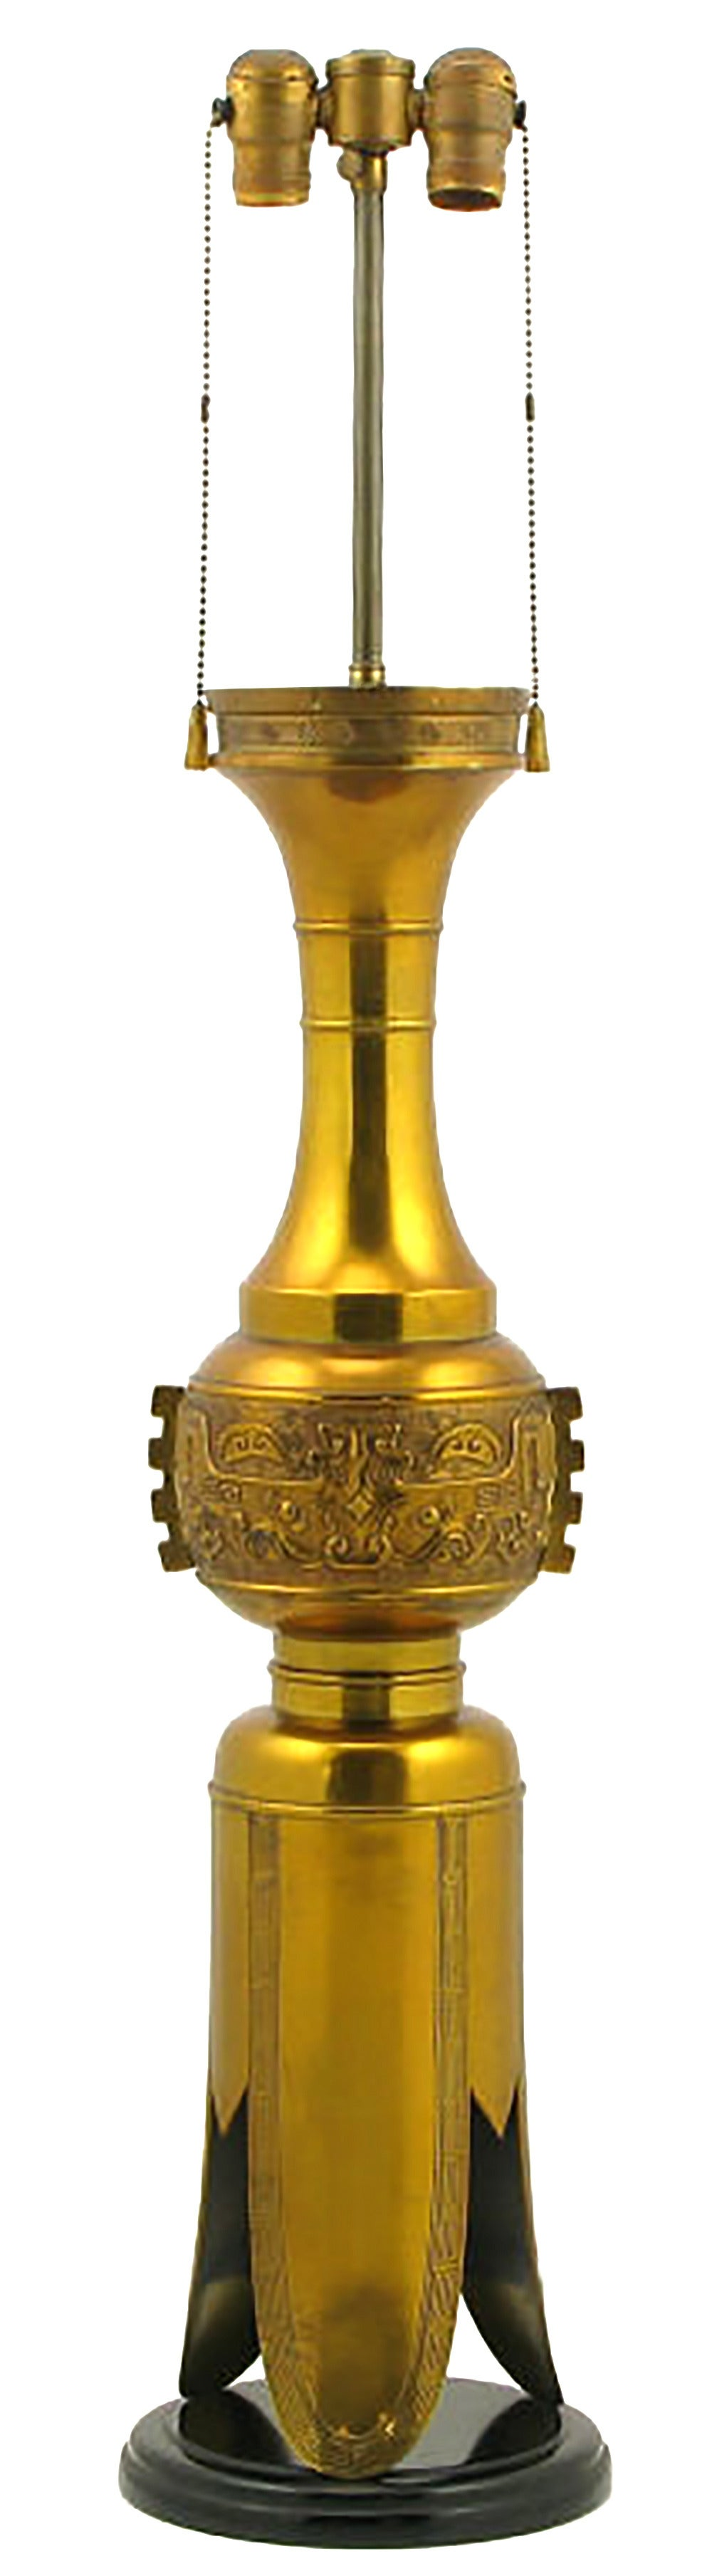 Large and unexpected, Chinese inspired table lamp in incised brass with Greek key detailing. Double socket illumination with pull chains and ebonized carved wood plinth base. Sold sans shade.